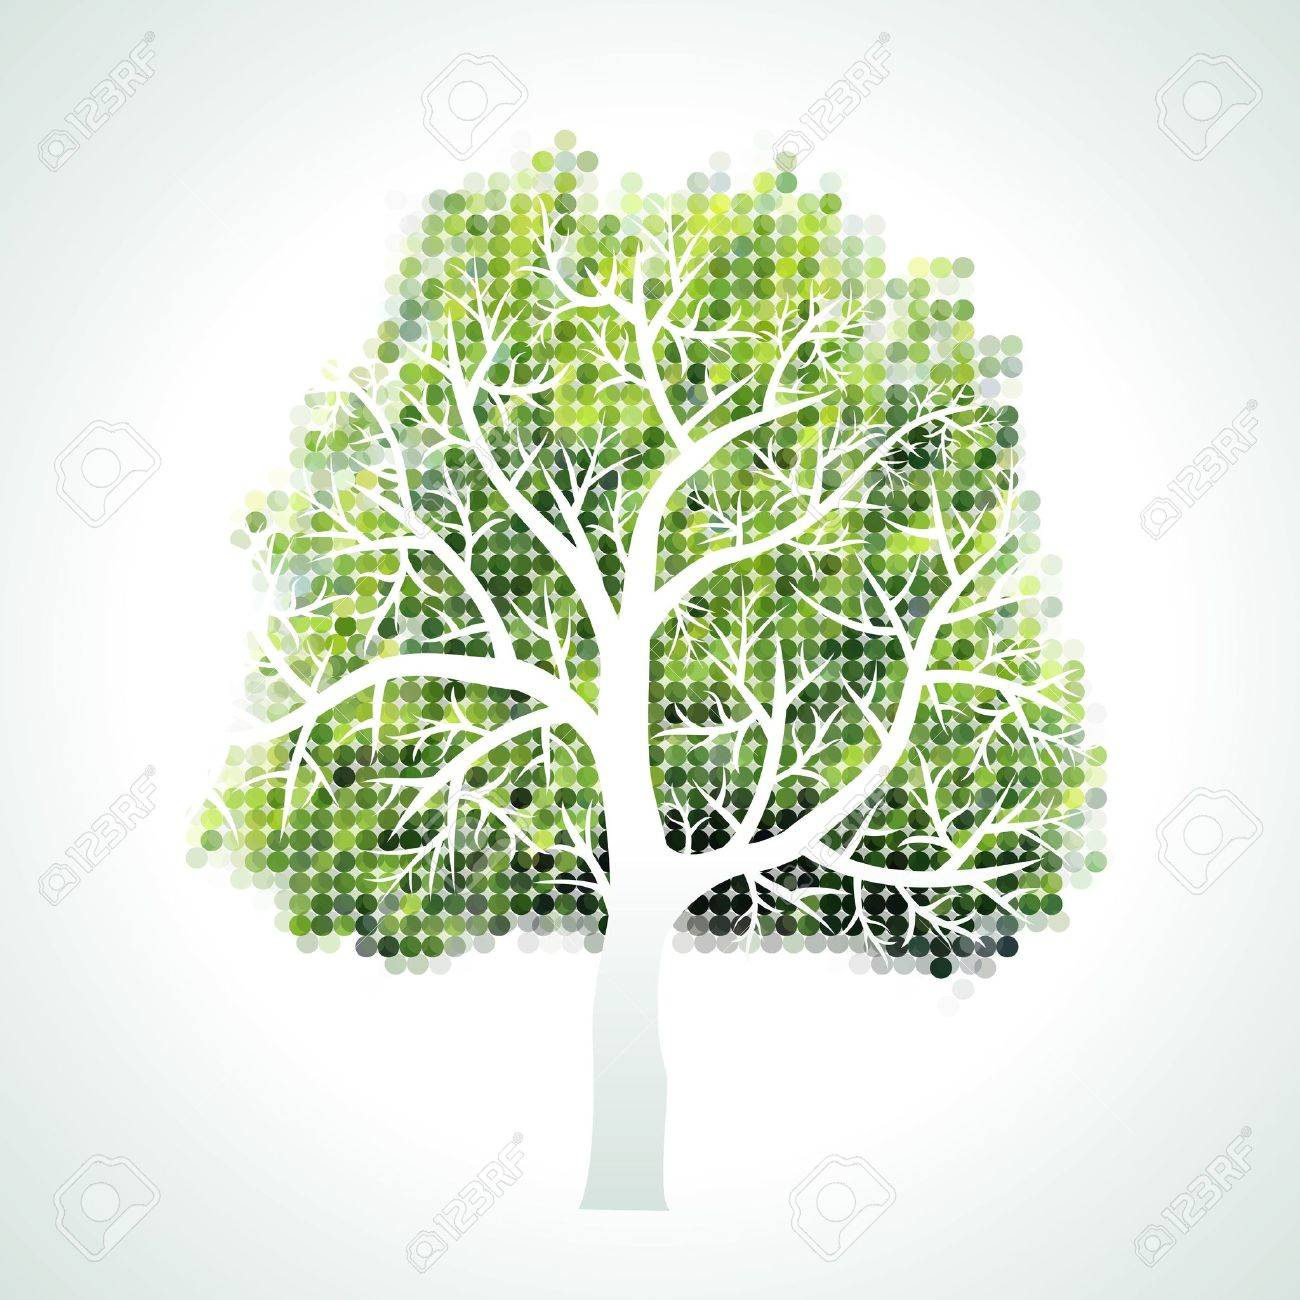 halftone tree with branches and leaves Stock Vector - 15623035